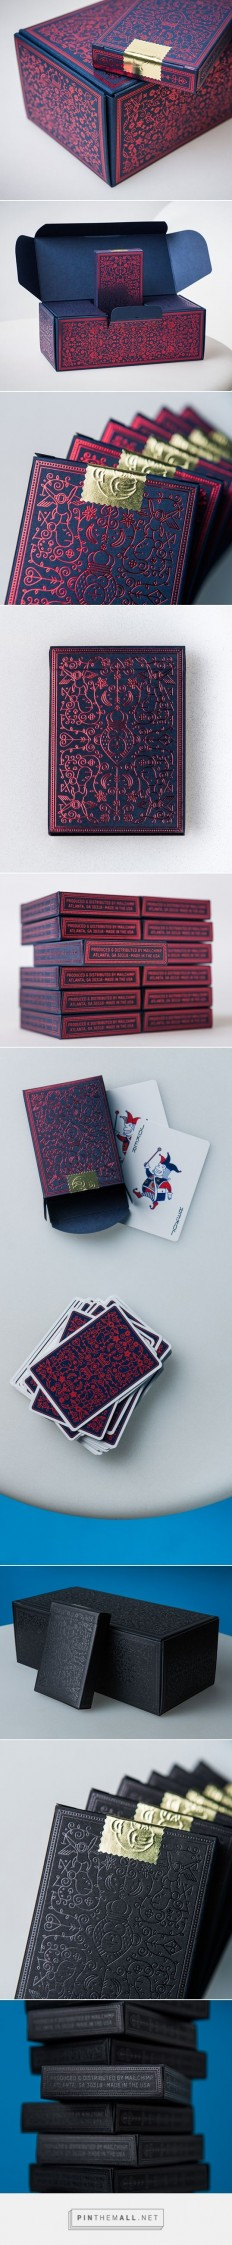 27 Beautiful Packaging Designs